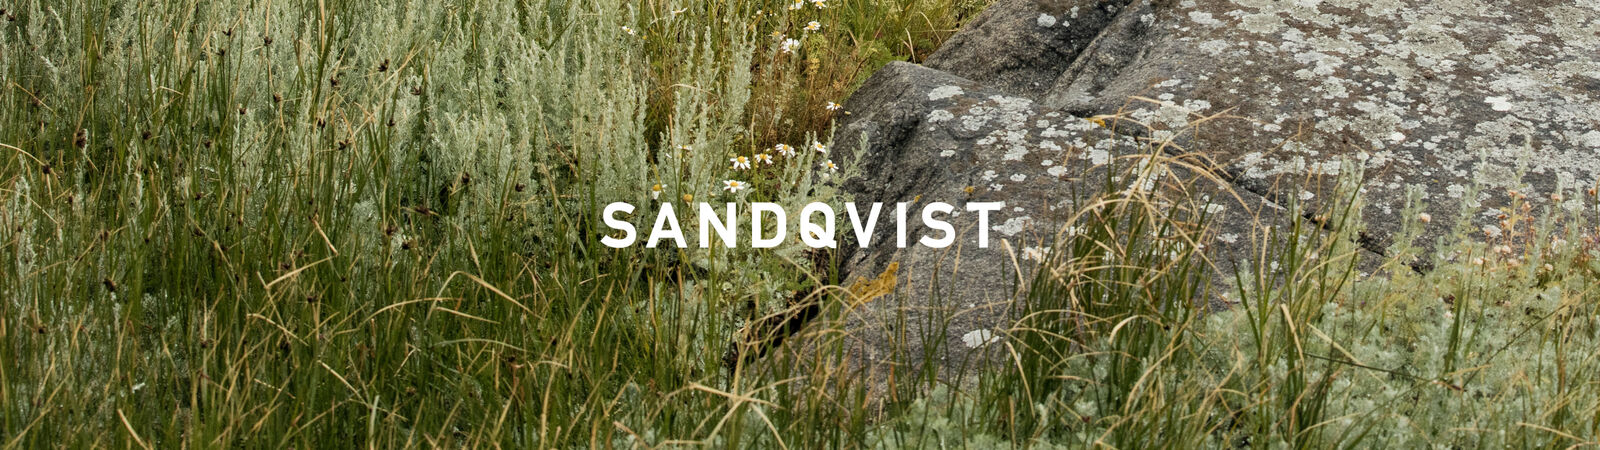 Sandqvist Bags and Backpacks Available at Sportique